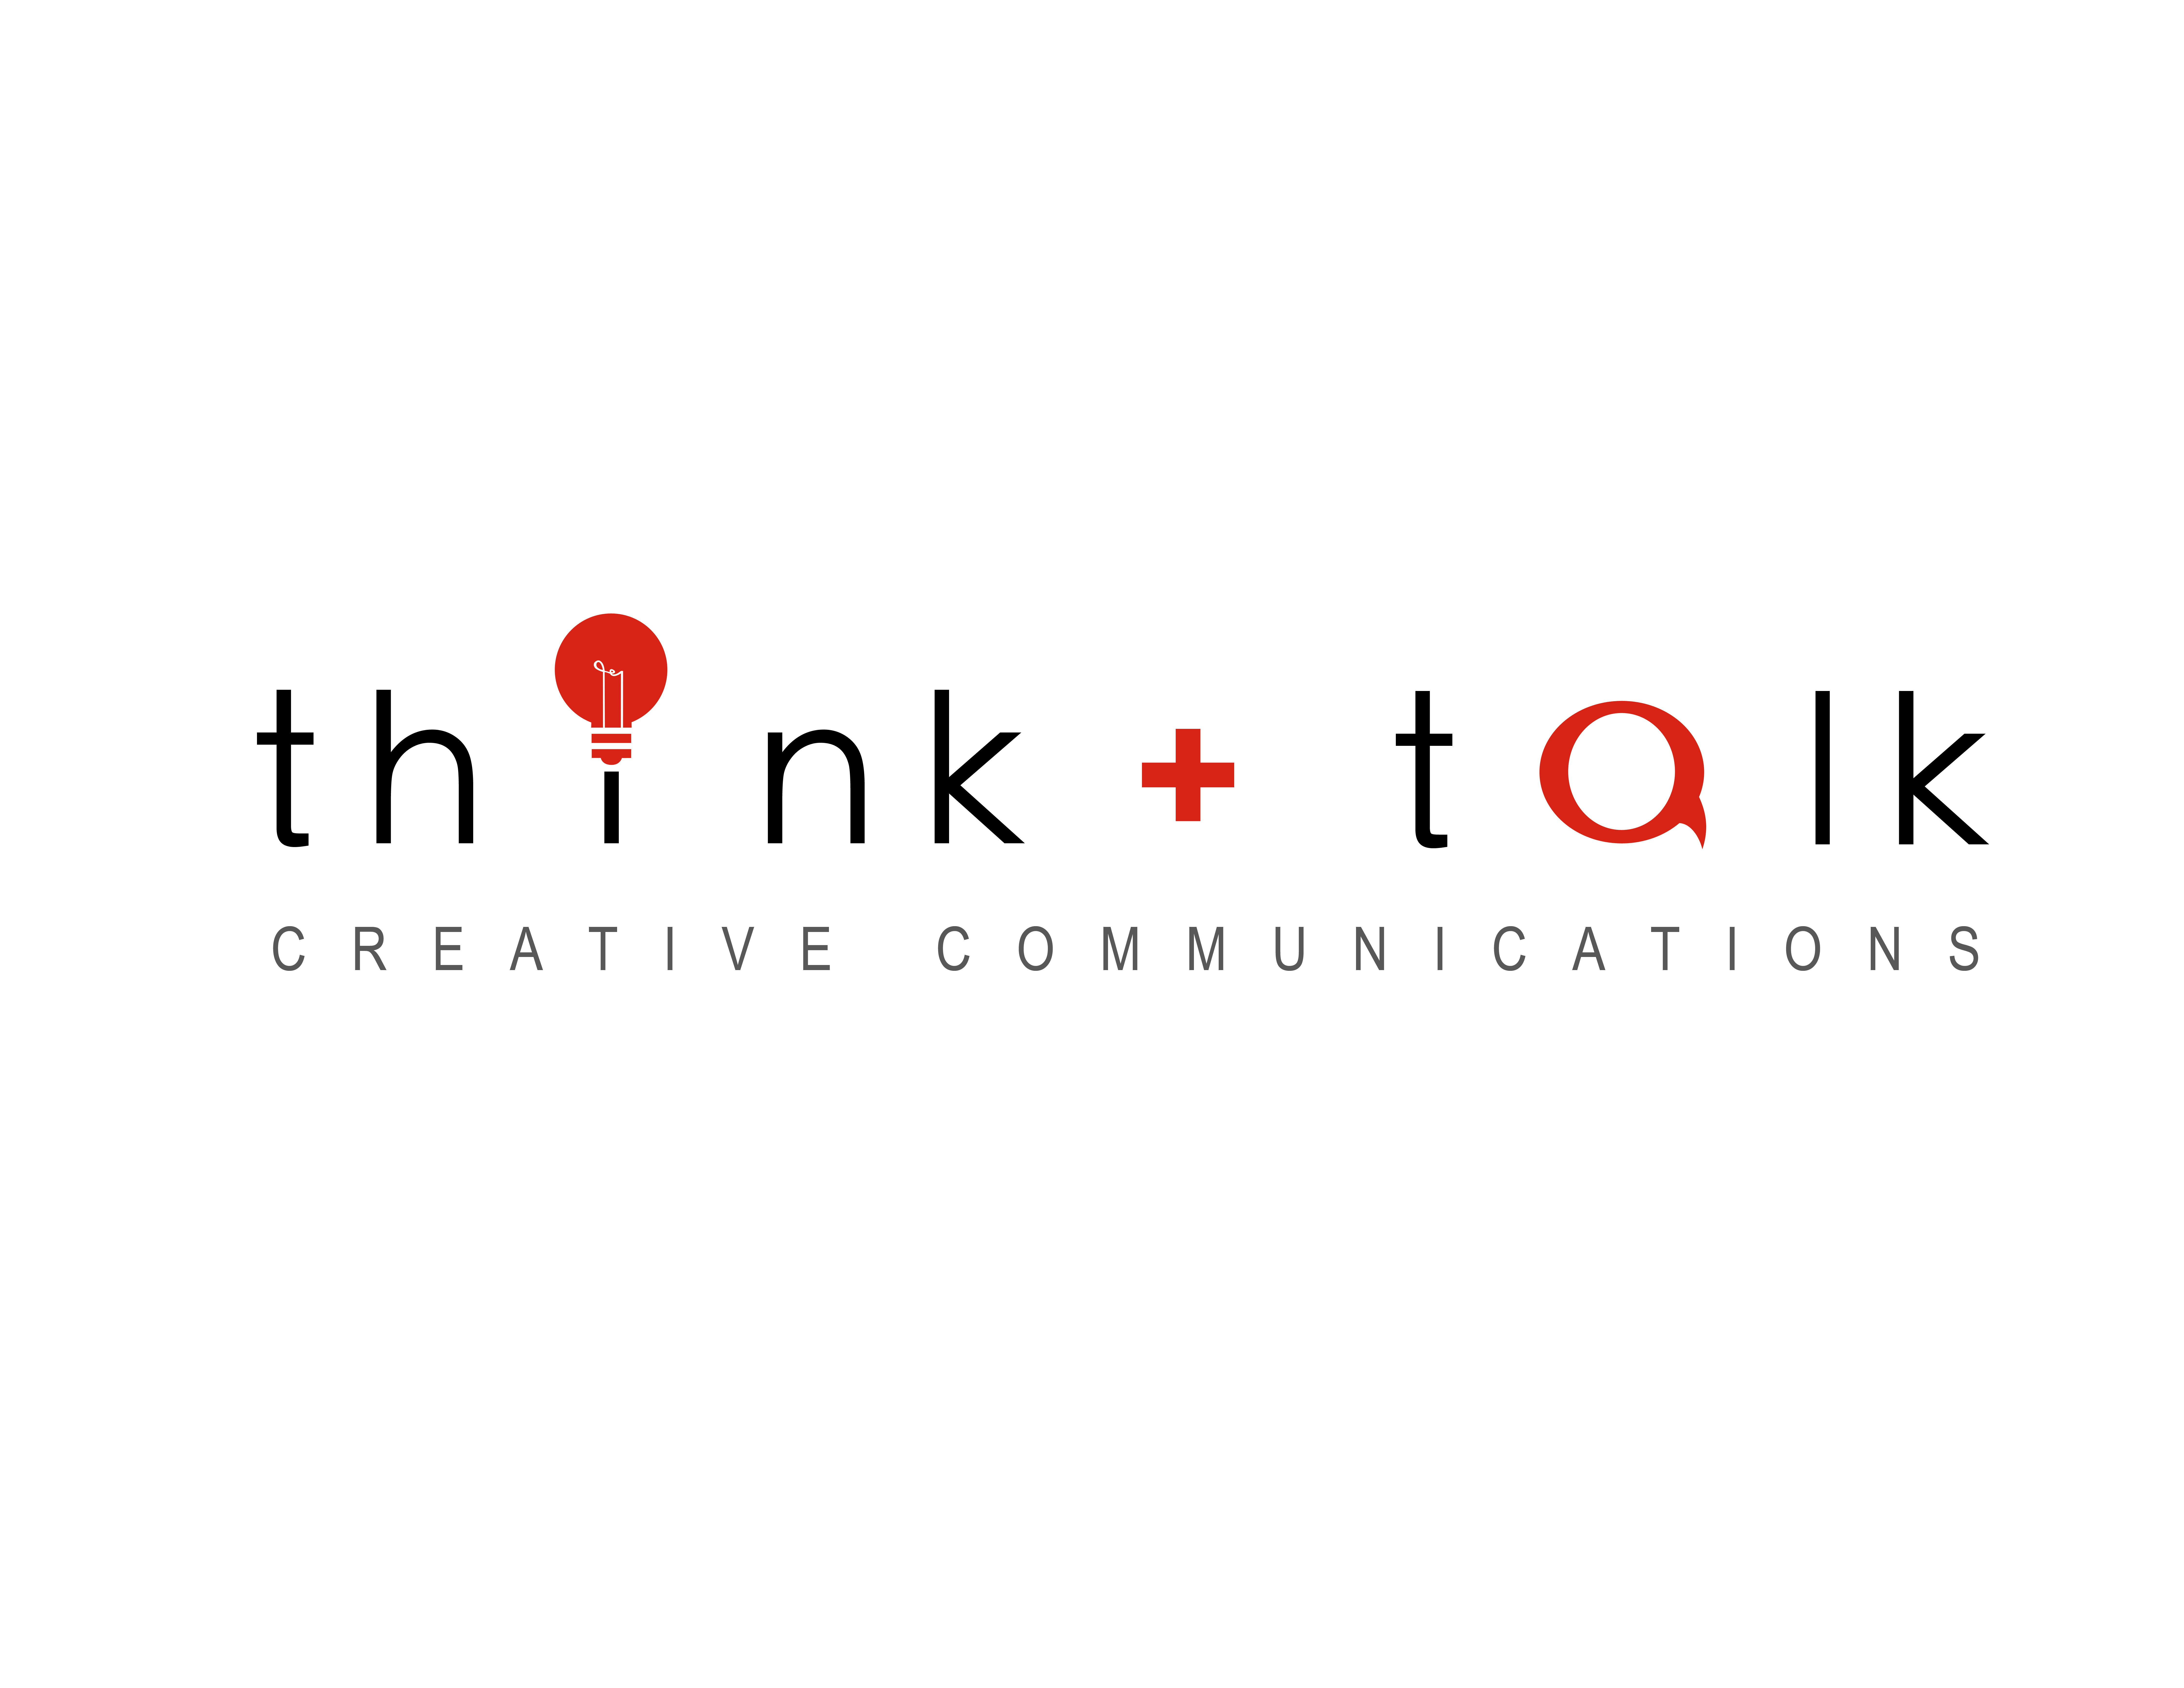 THINK+TALK CREATIVE COMMUNICATIONS, INC